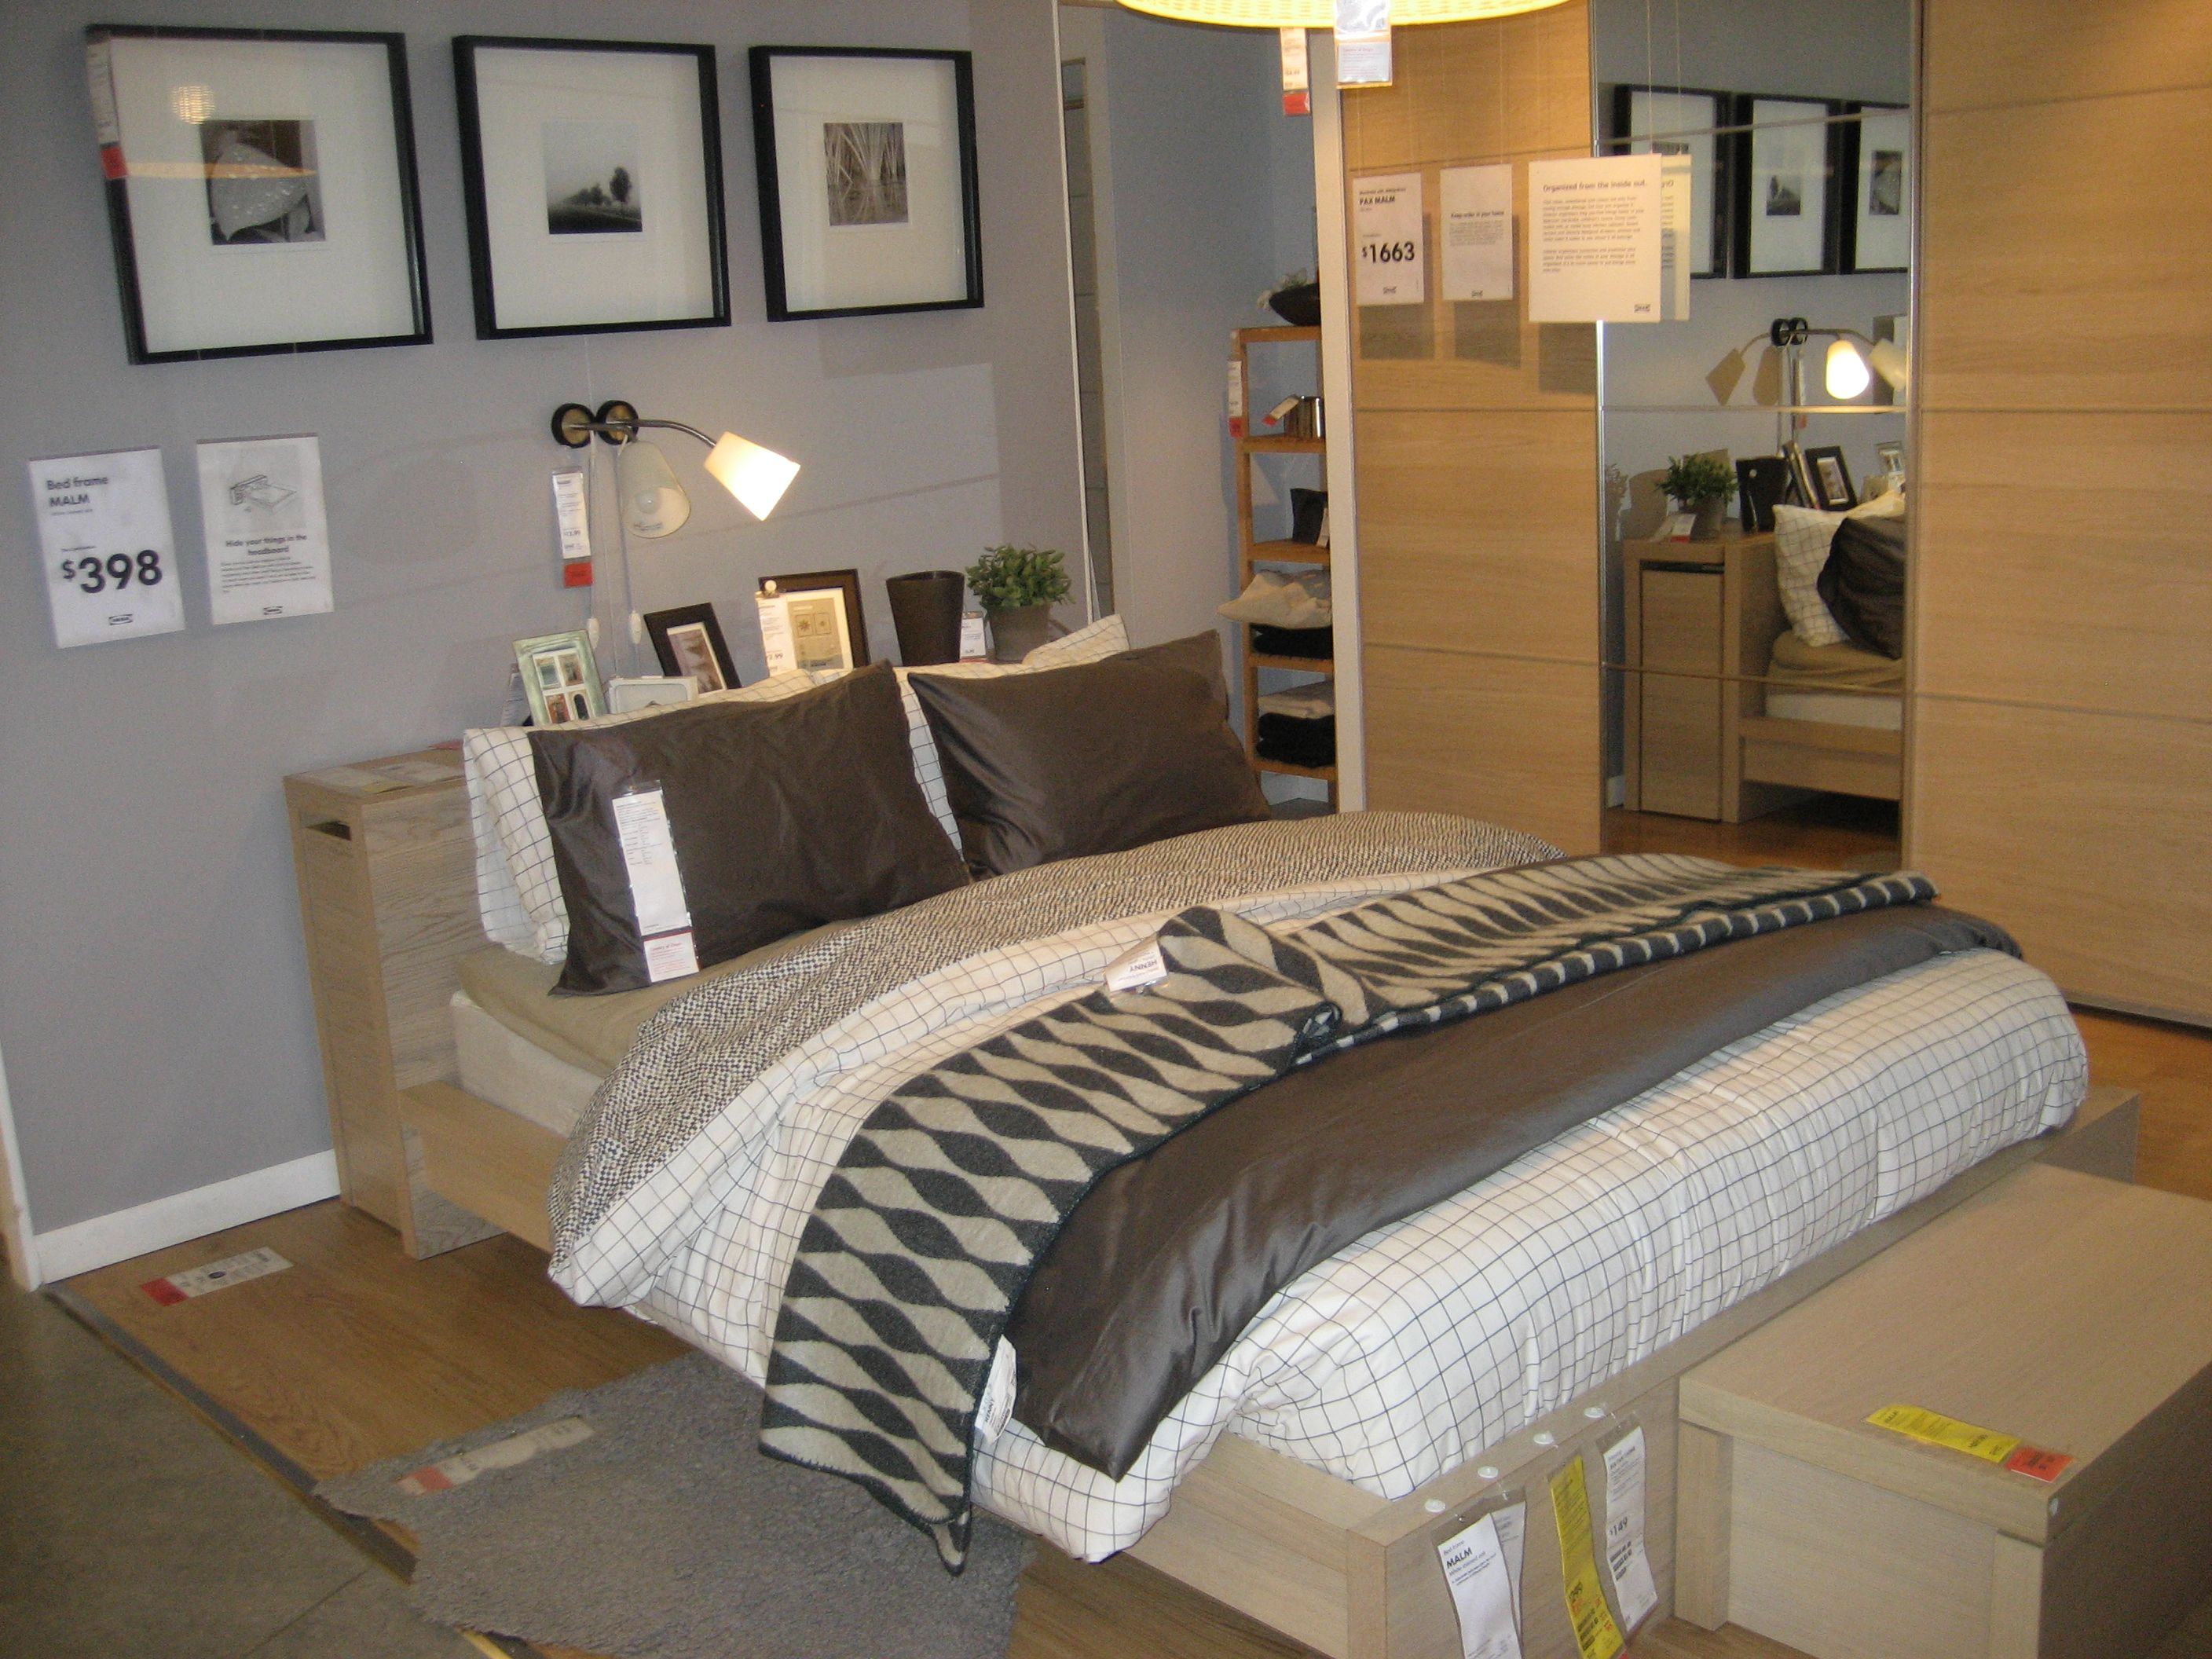 Ikea malm bedroom set | Bedroom | Pinterest | Ikea malm, Malm and ...